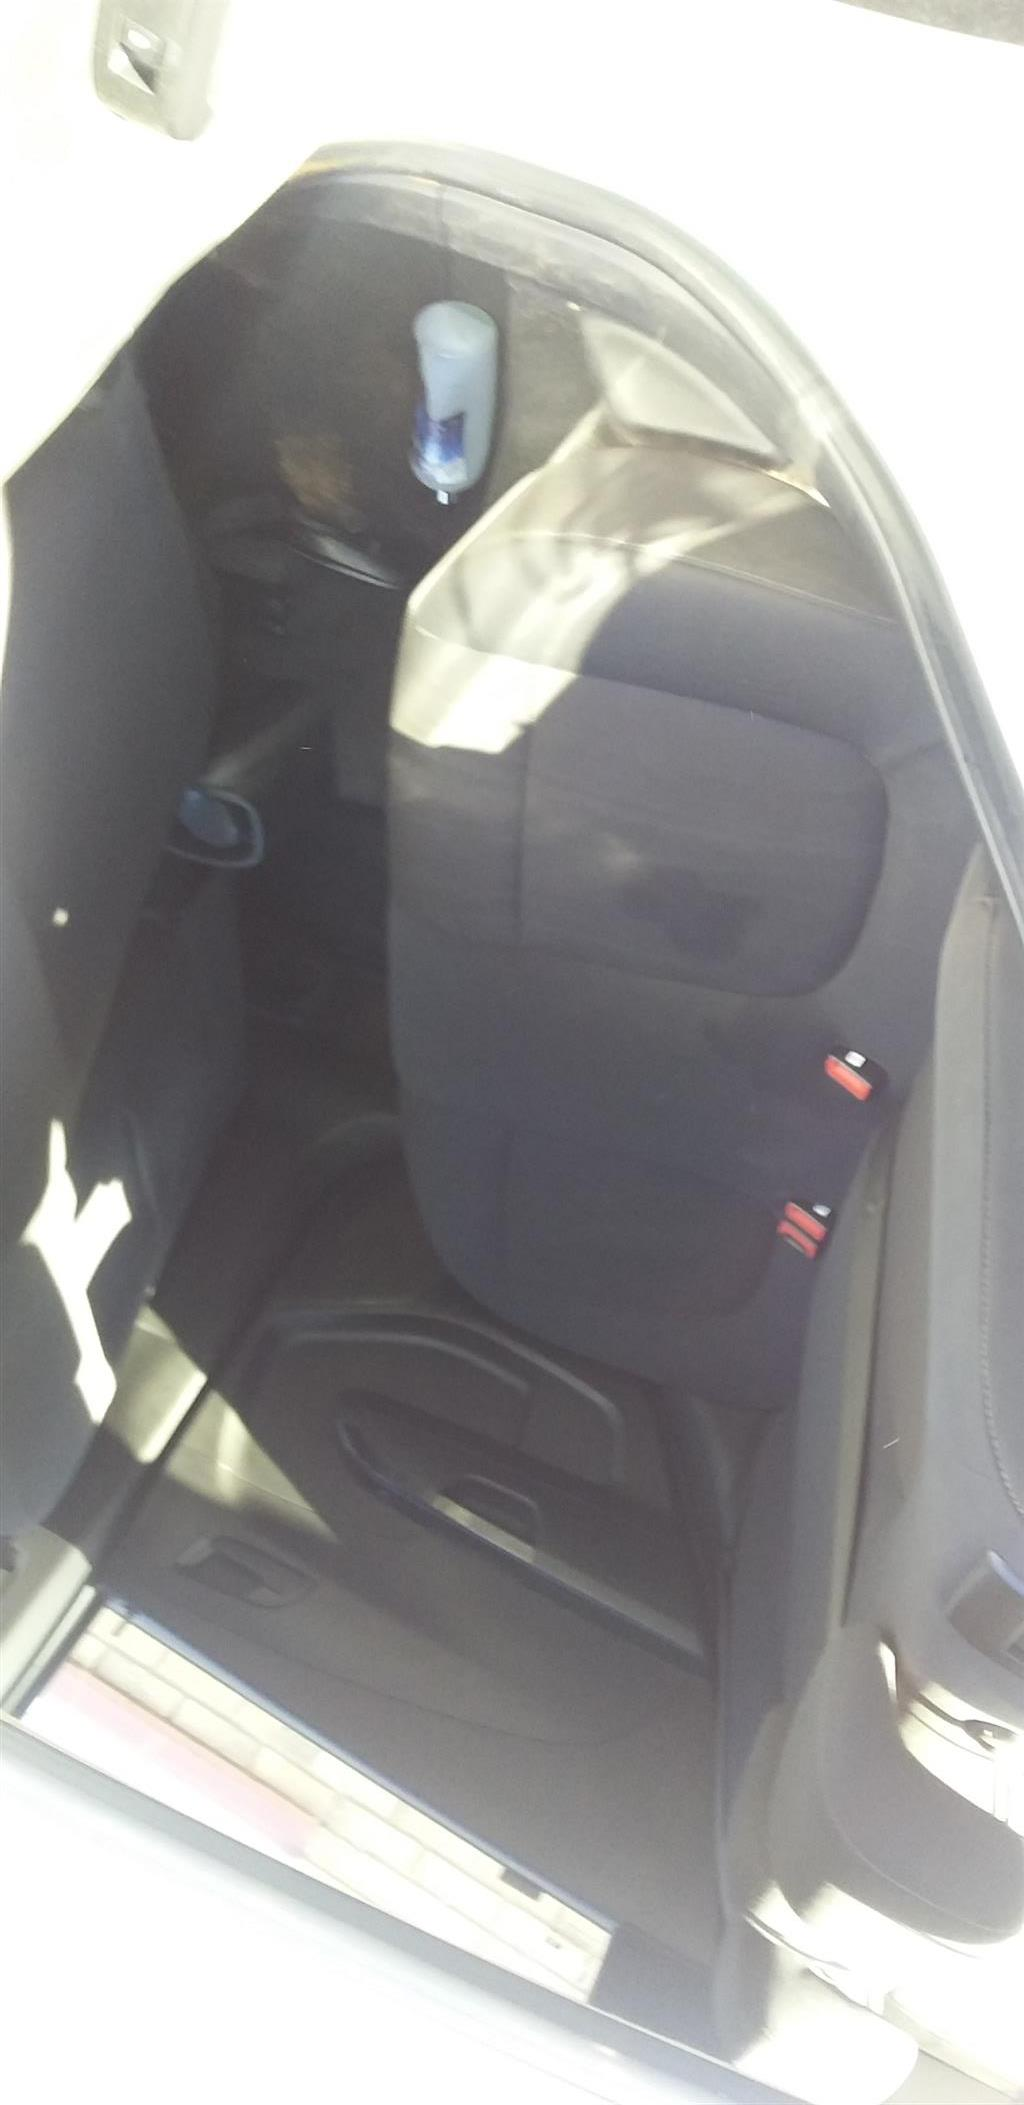 Am selling my chev. Sonic 1.4